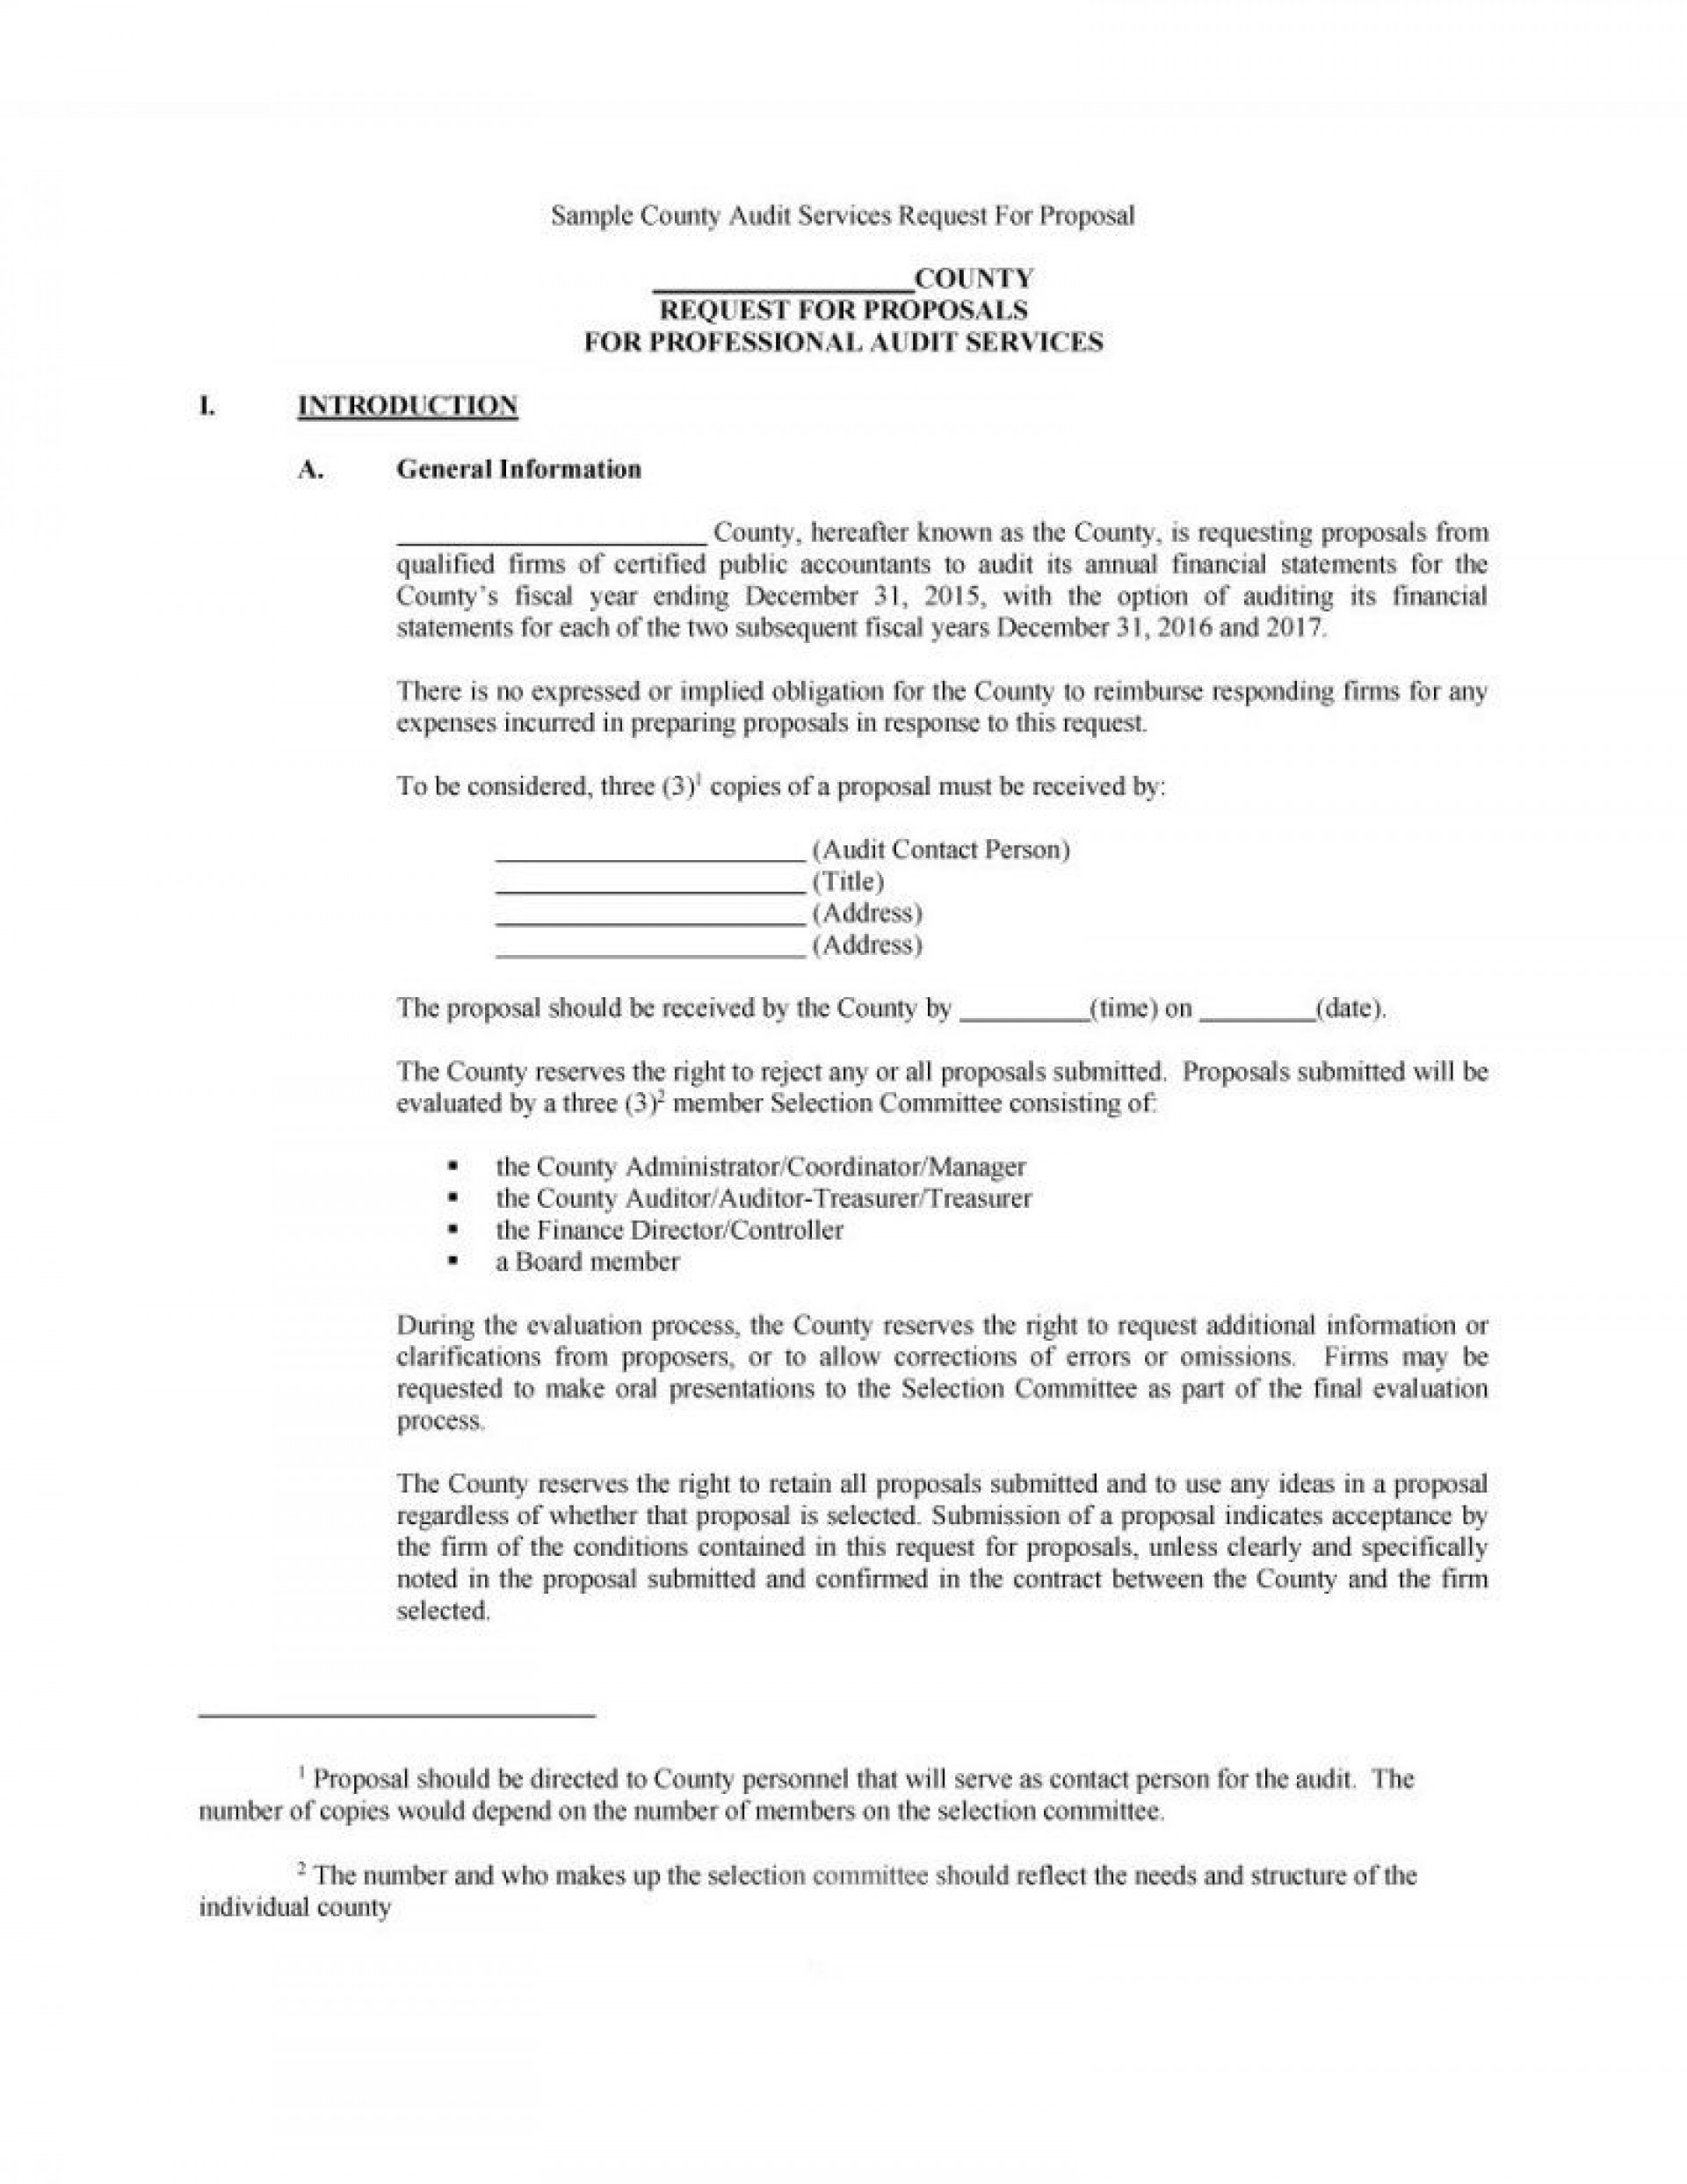 005 Imposing Request For Proposal Template Construction High Resolution  Rfp Residential1920